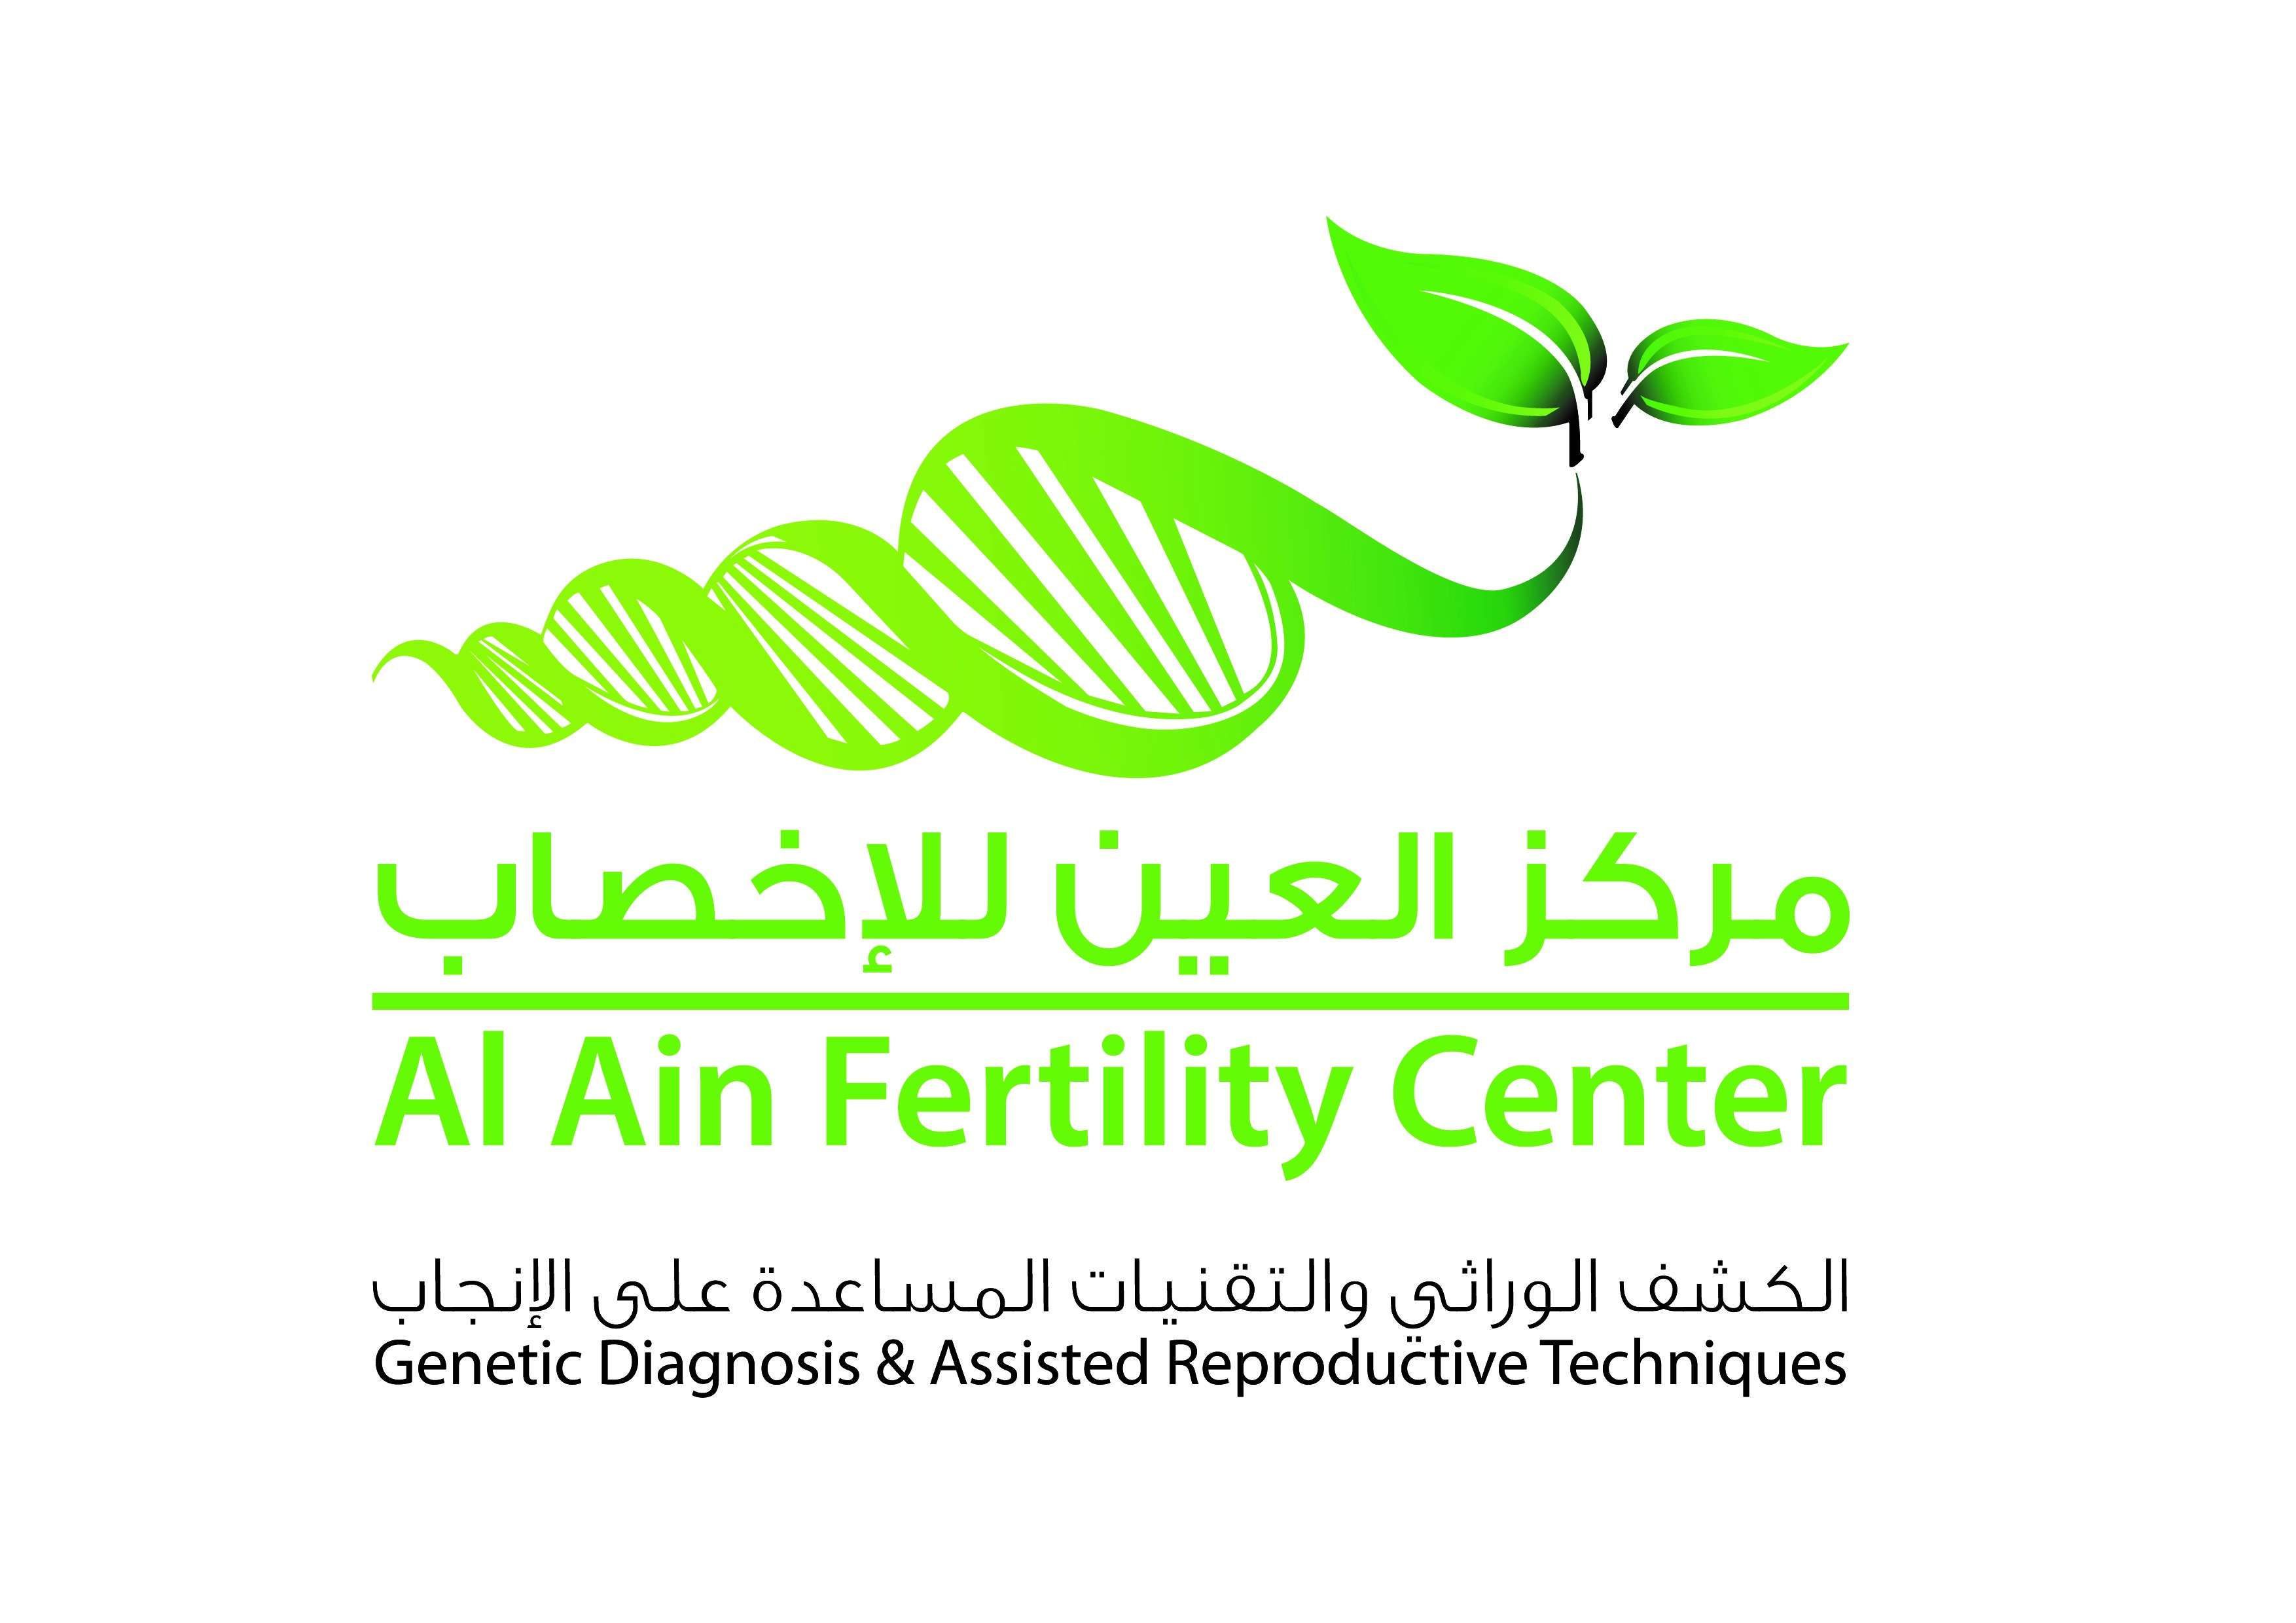 Al Ain Fertility Center